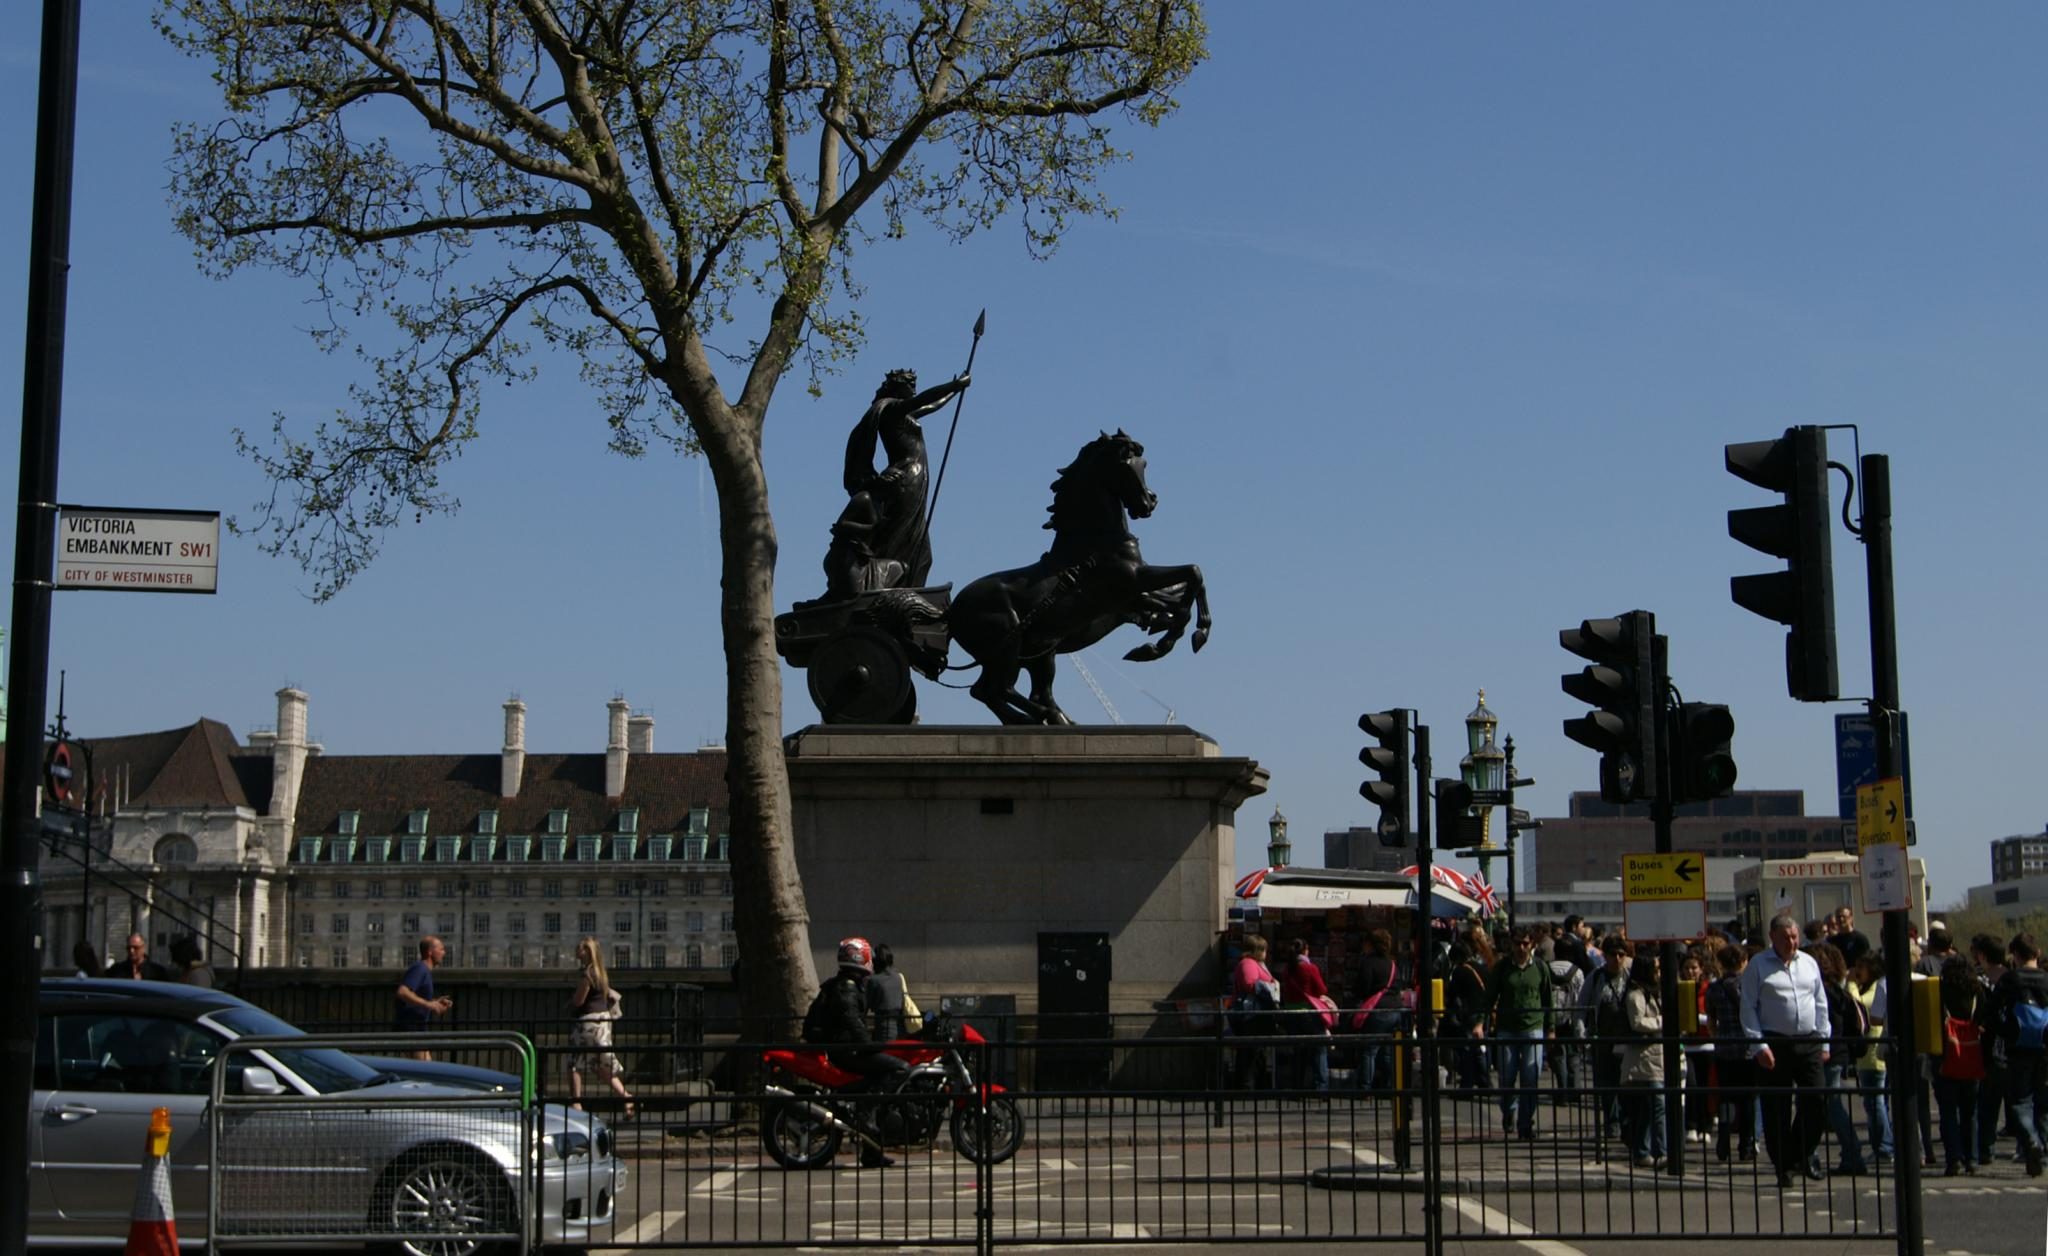 https://i1.wp.com/upload.wikimedia.org/wikipedia/commons/e/e6/Statue_of_Boudicca.jpg